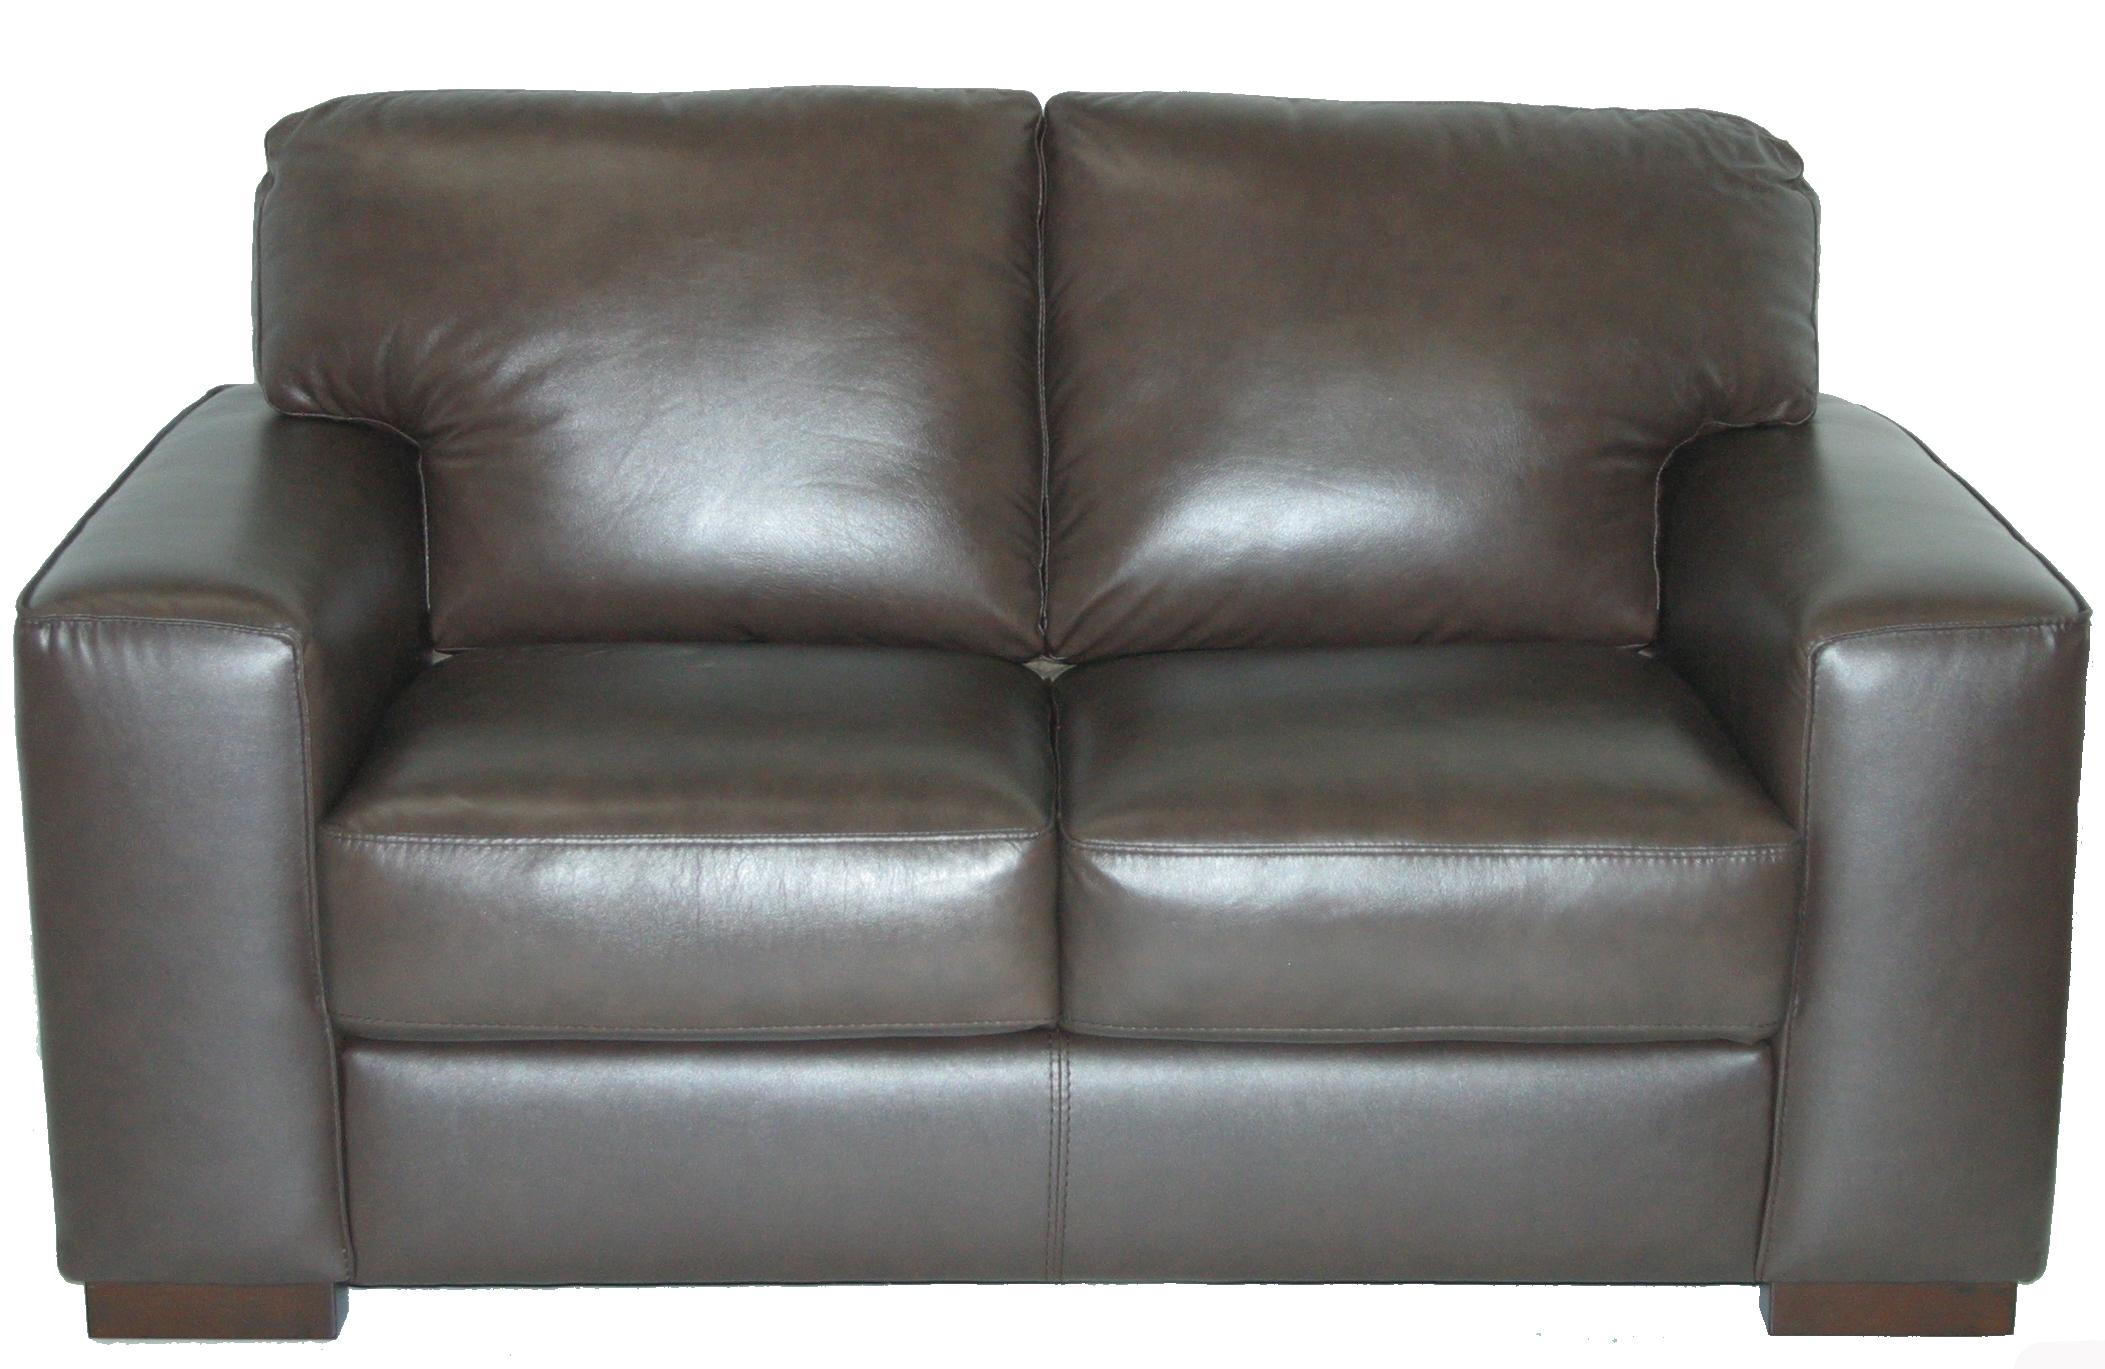 30480 Loveseat by Violino at Furniture Superstore - Rochester, MN